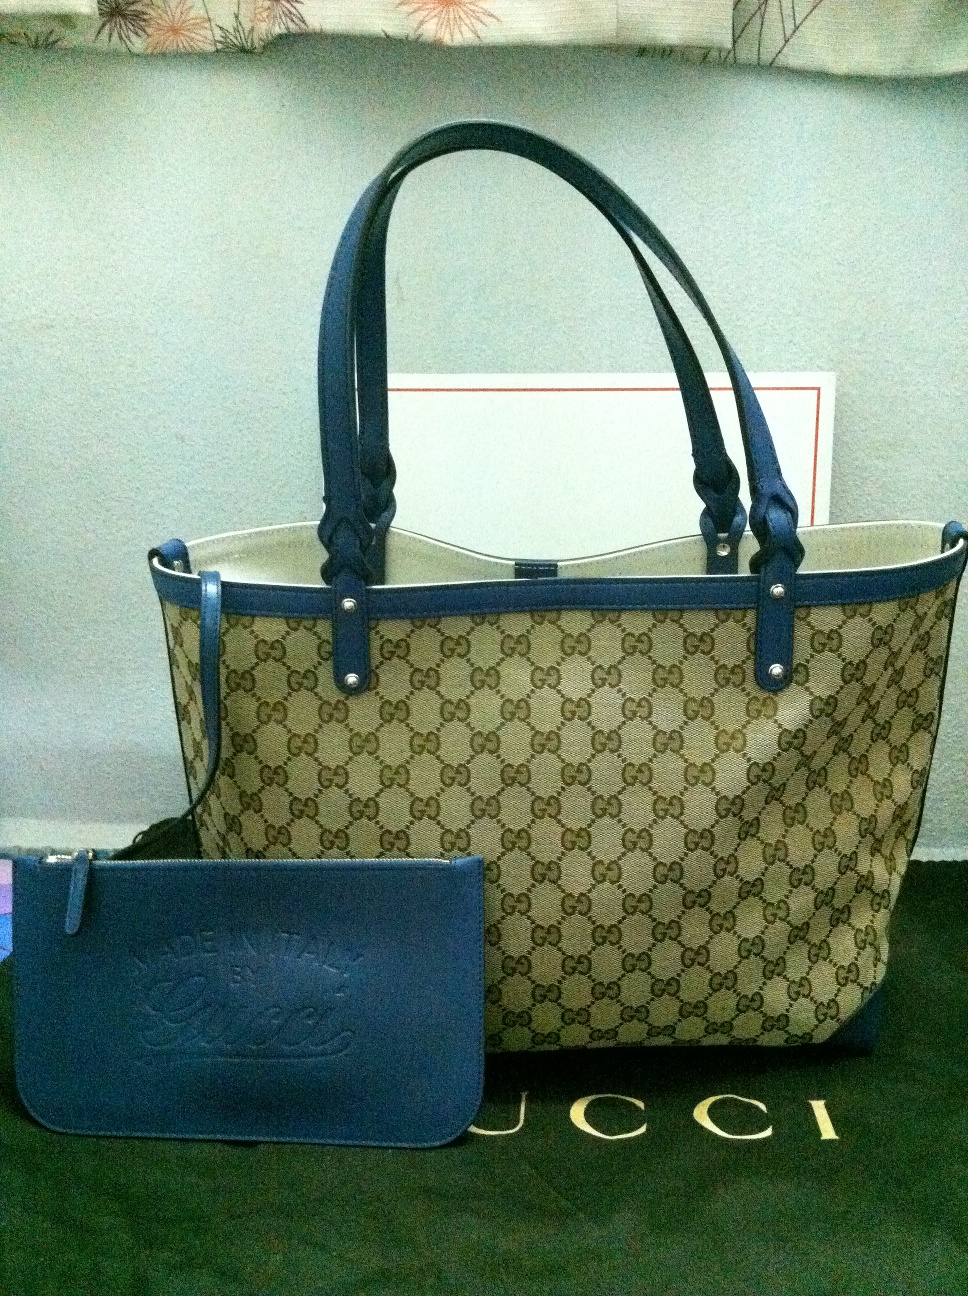 553471eb8 Authentic Luxury Items @ Bargain Price: Brand New Gucci Craft Blue ...